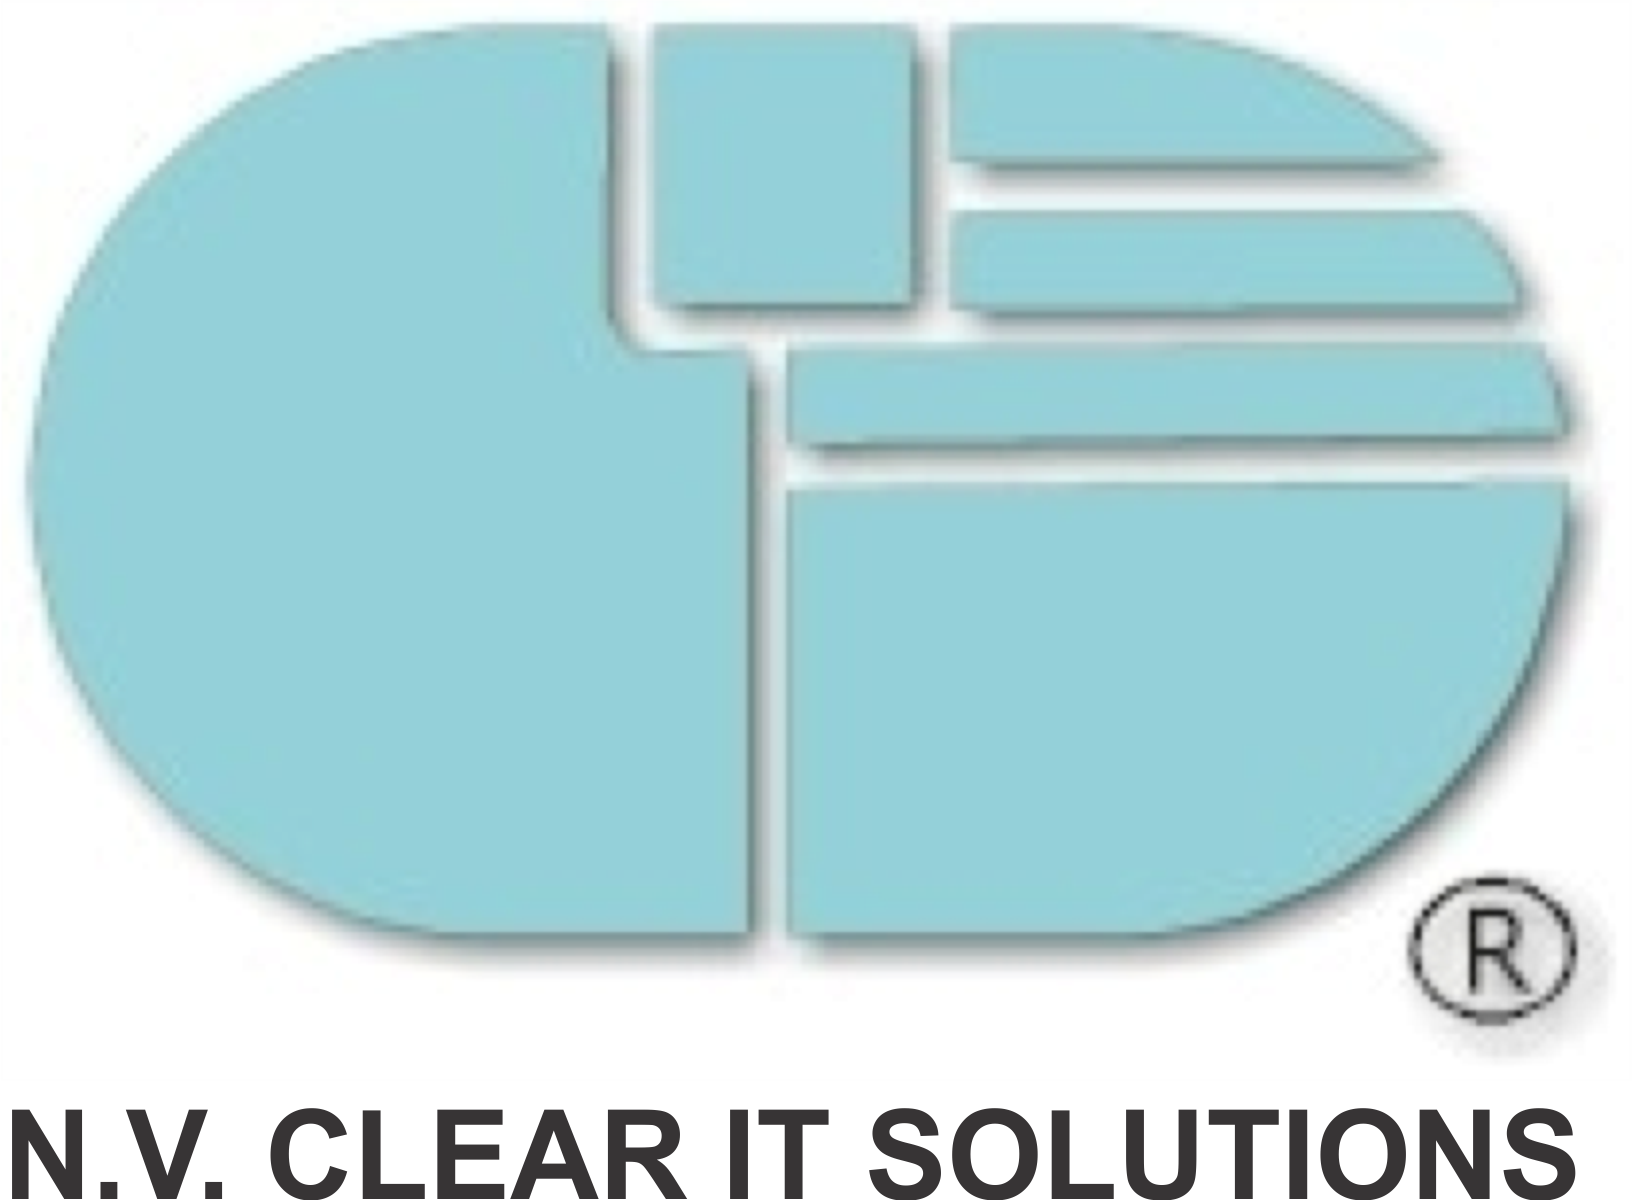 CLEAR IT SOLUTION